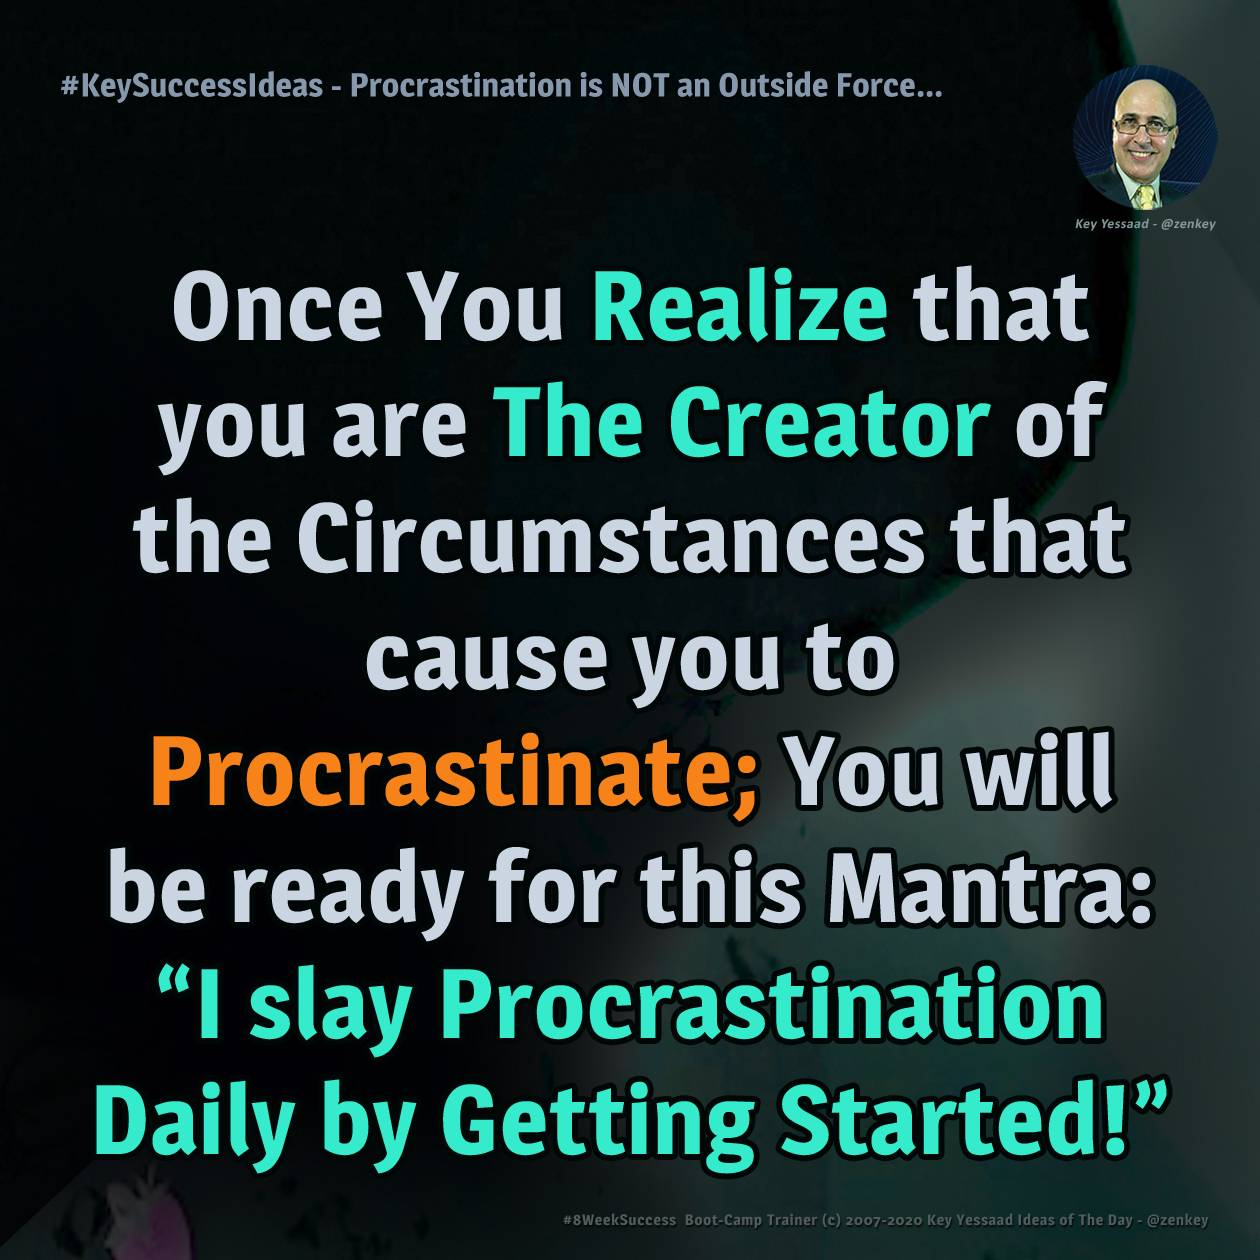 #KeySuccessIdeas - Procrastination is NOT an Outside Force...